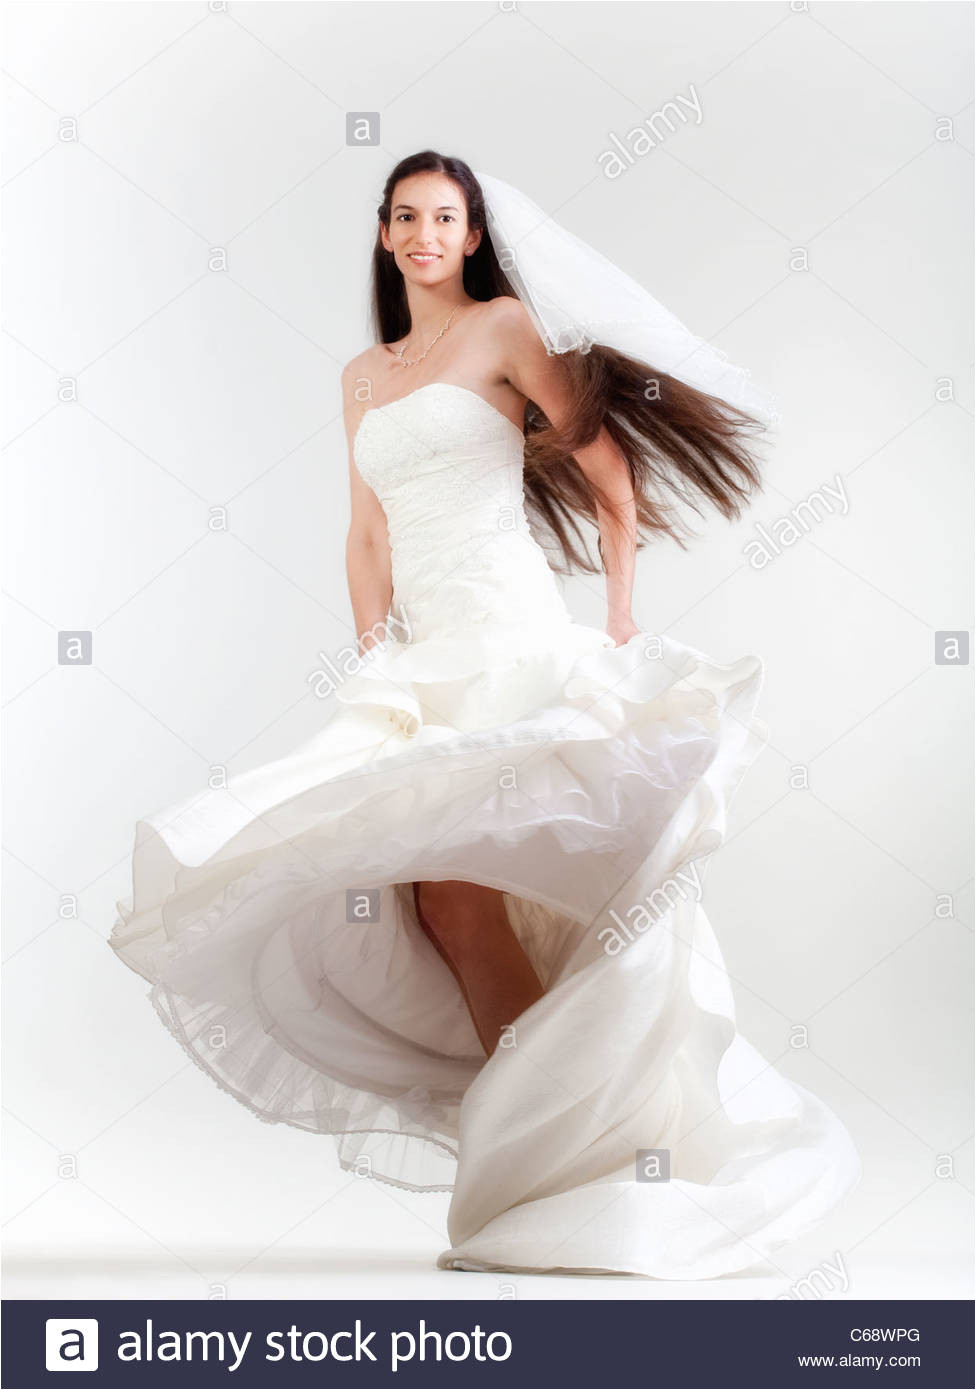 portrait od a bride with long dark hair in wedding dress isolated on gray